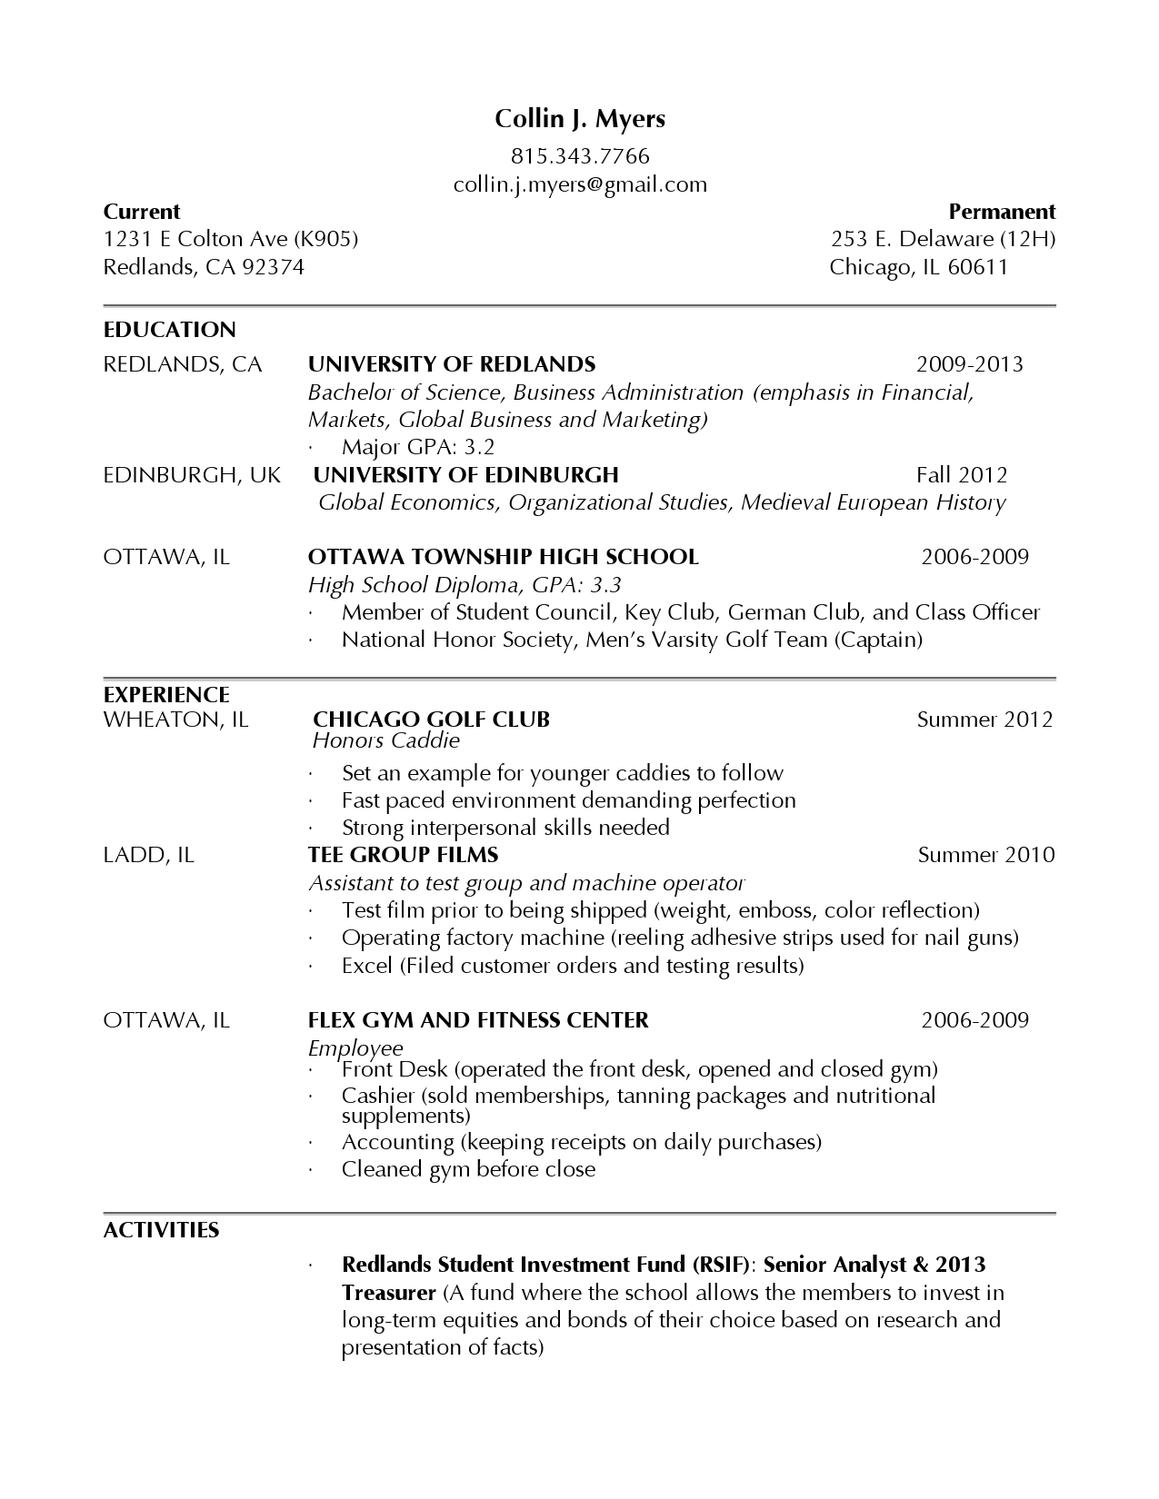 resume by collin myers